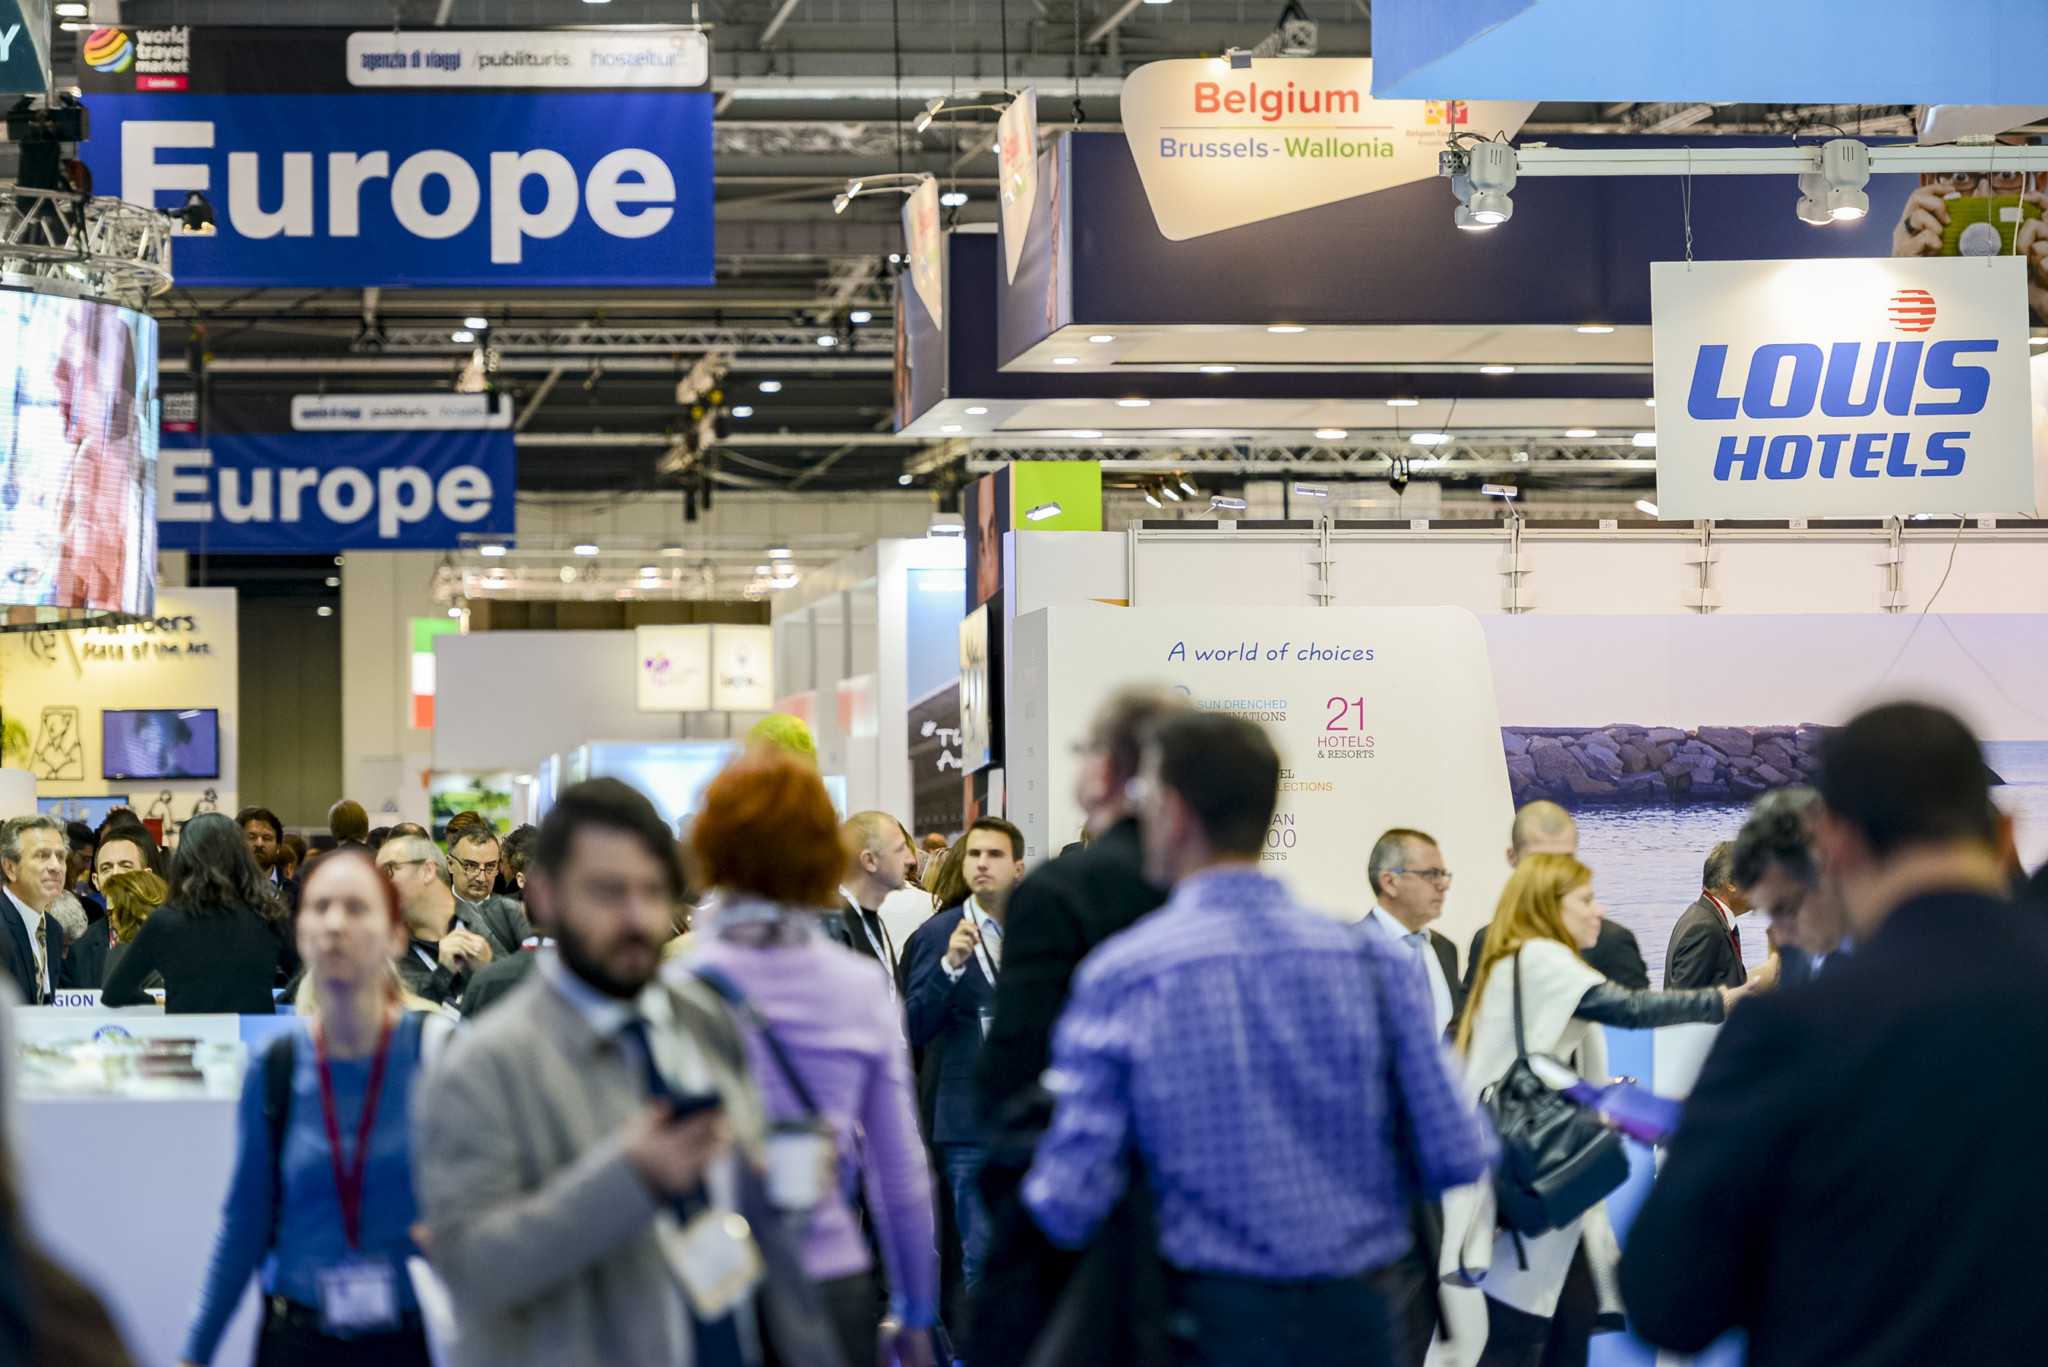 World Travel Market 2016, ExCeL London - General views photographed in the European hall